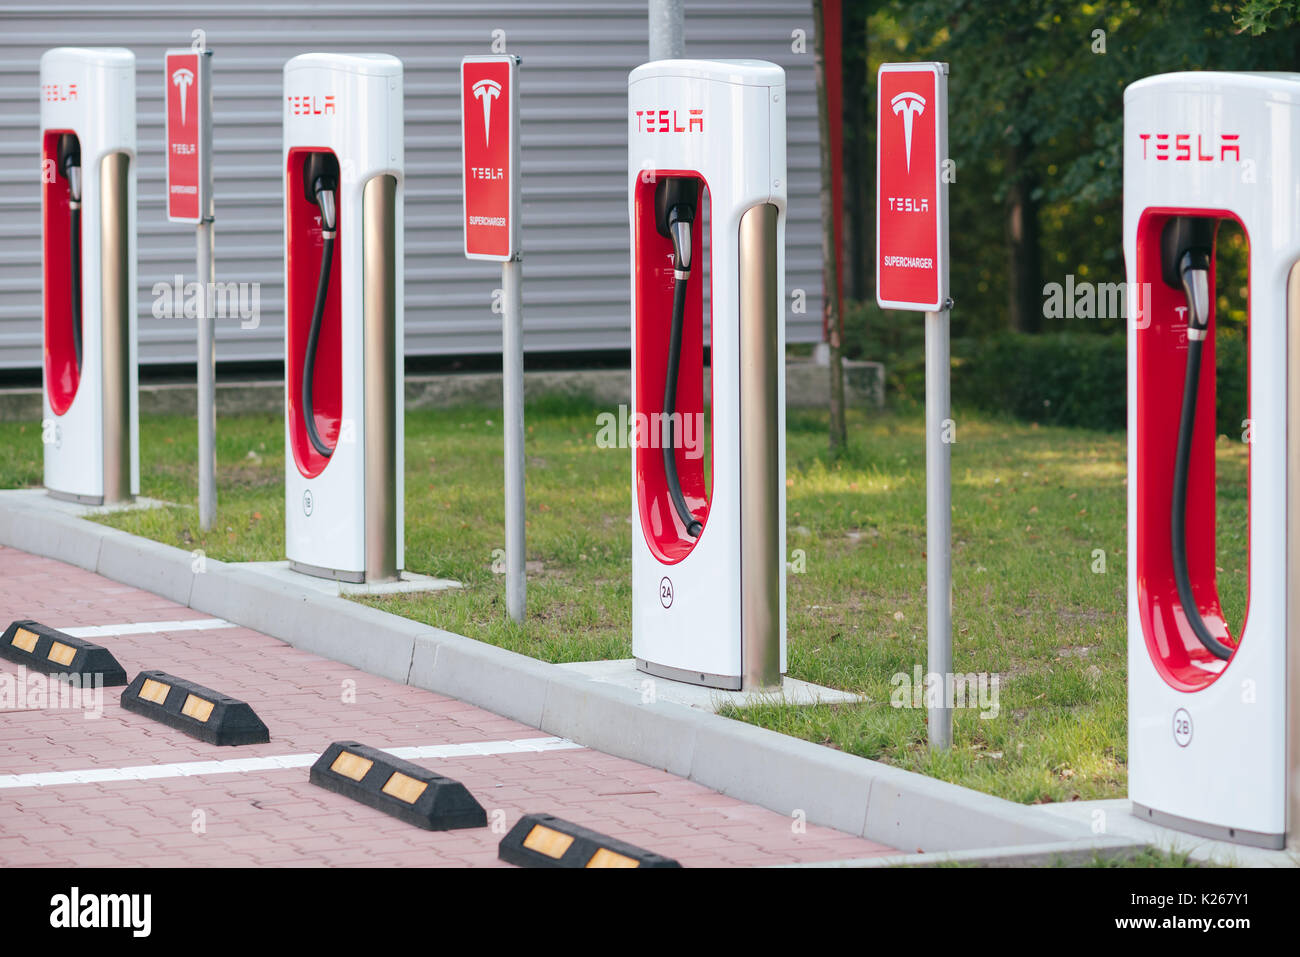 KATOWICE, POLAND - AUGUST 26, 2017: Tesla Supercharger station in Orlen Gas Station, Katowice. Tesla motors develops network of the charging stations  - Stock Image